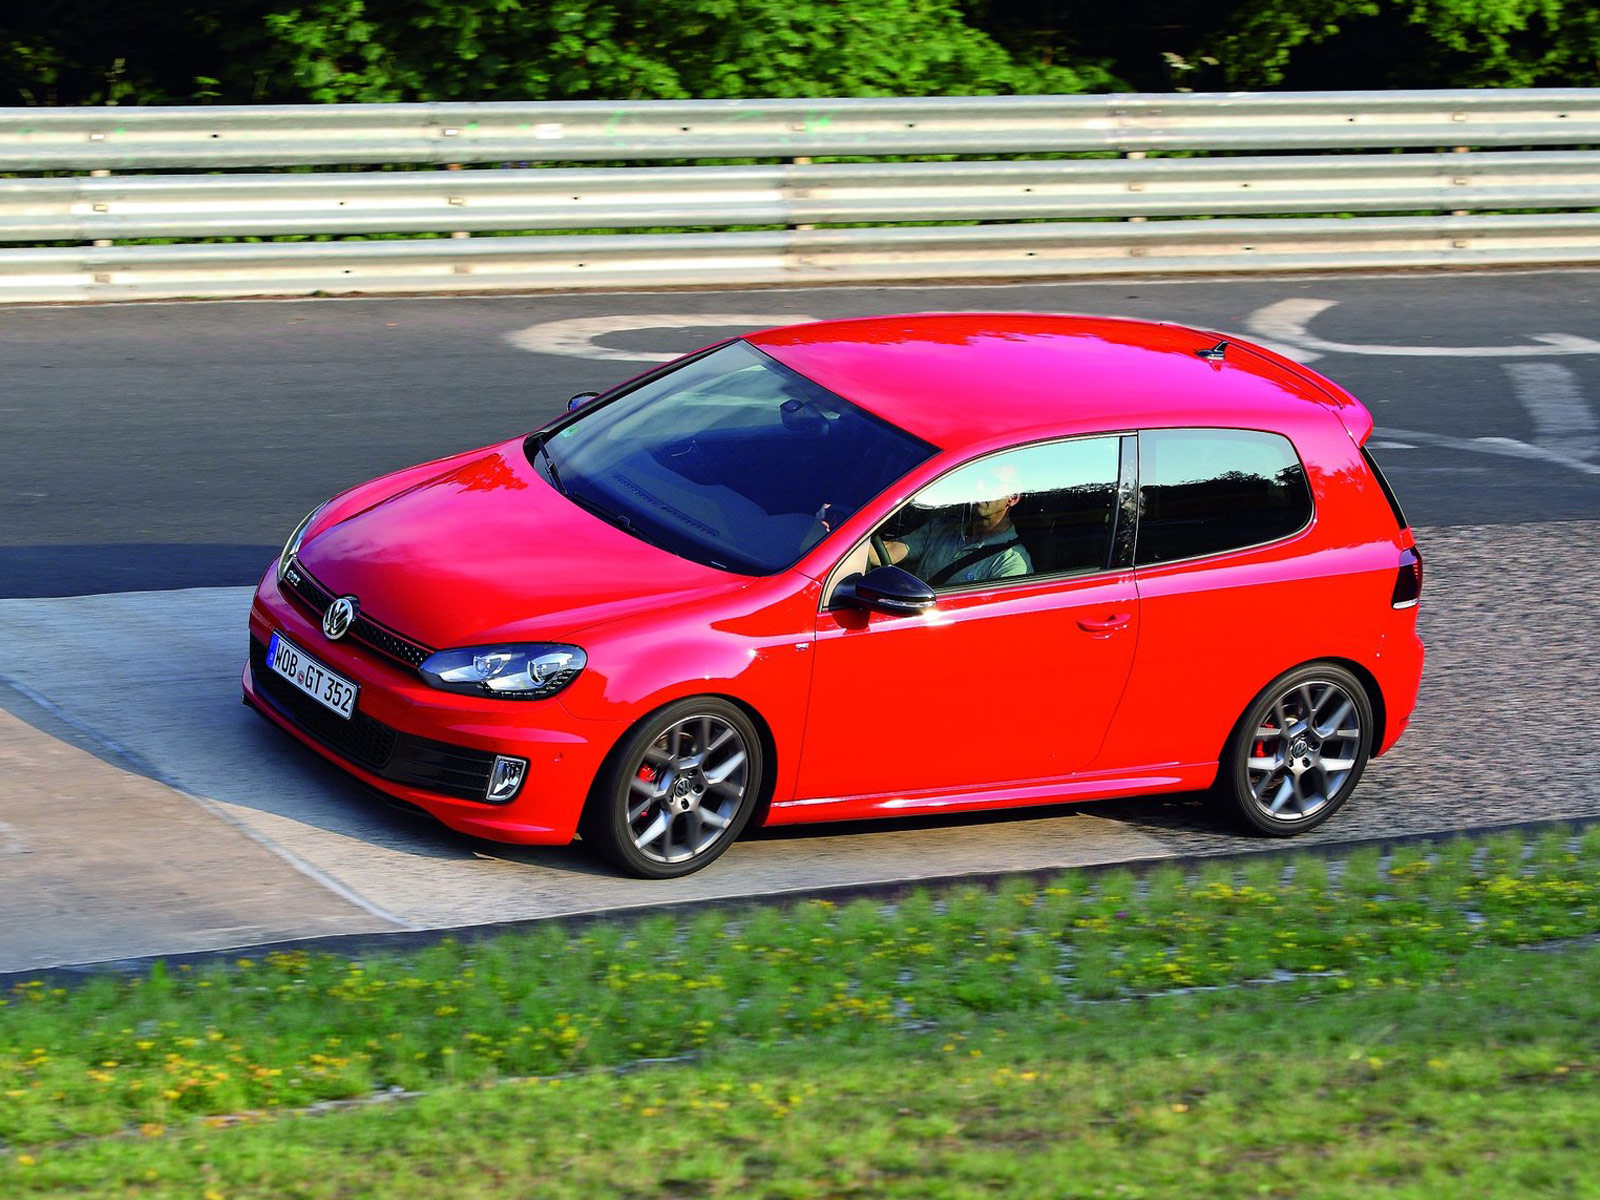 2011 Volkswagen Golf Gti Edition 35 Car Wallpaper Auto